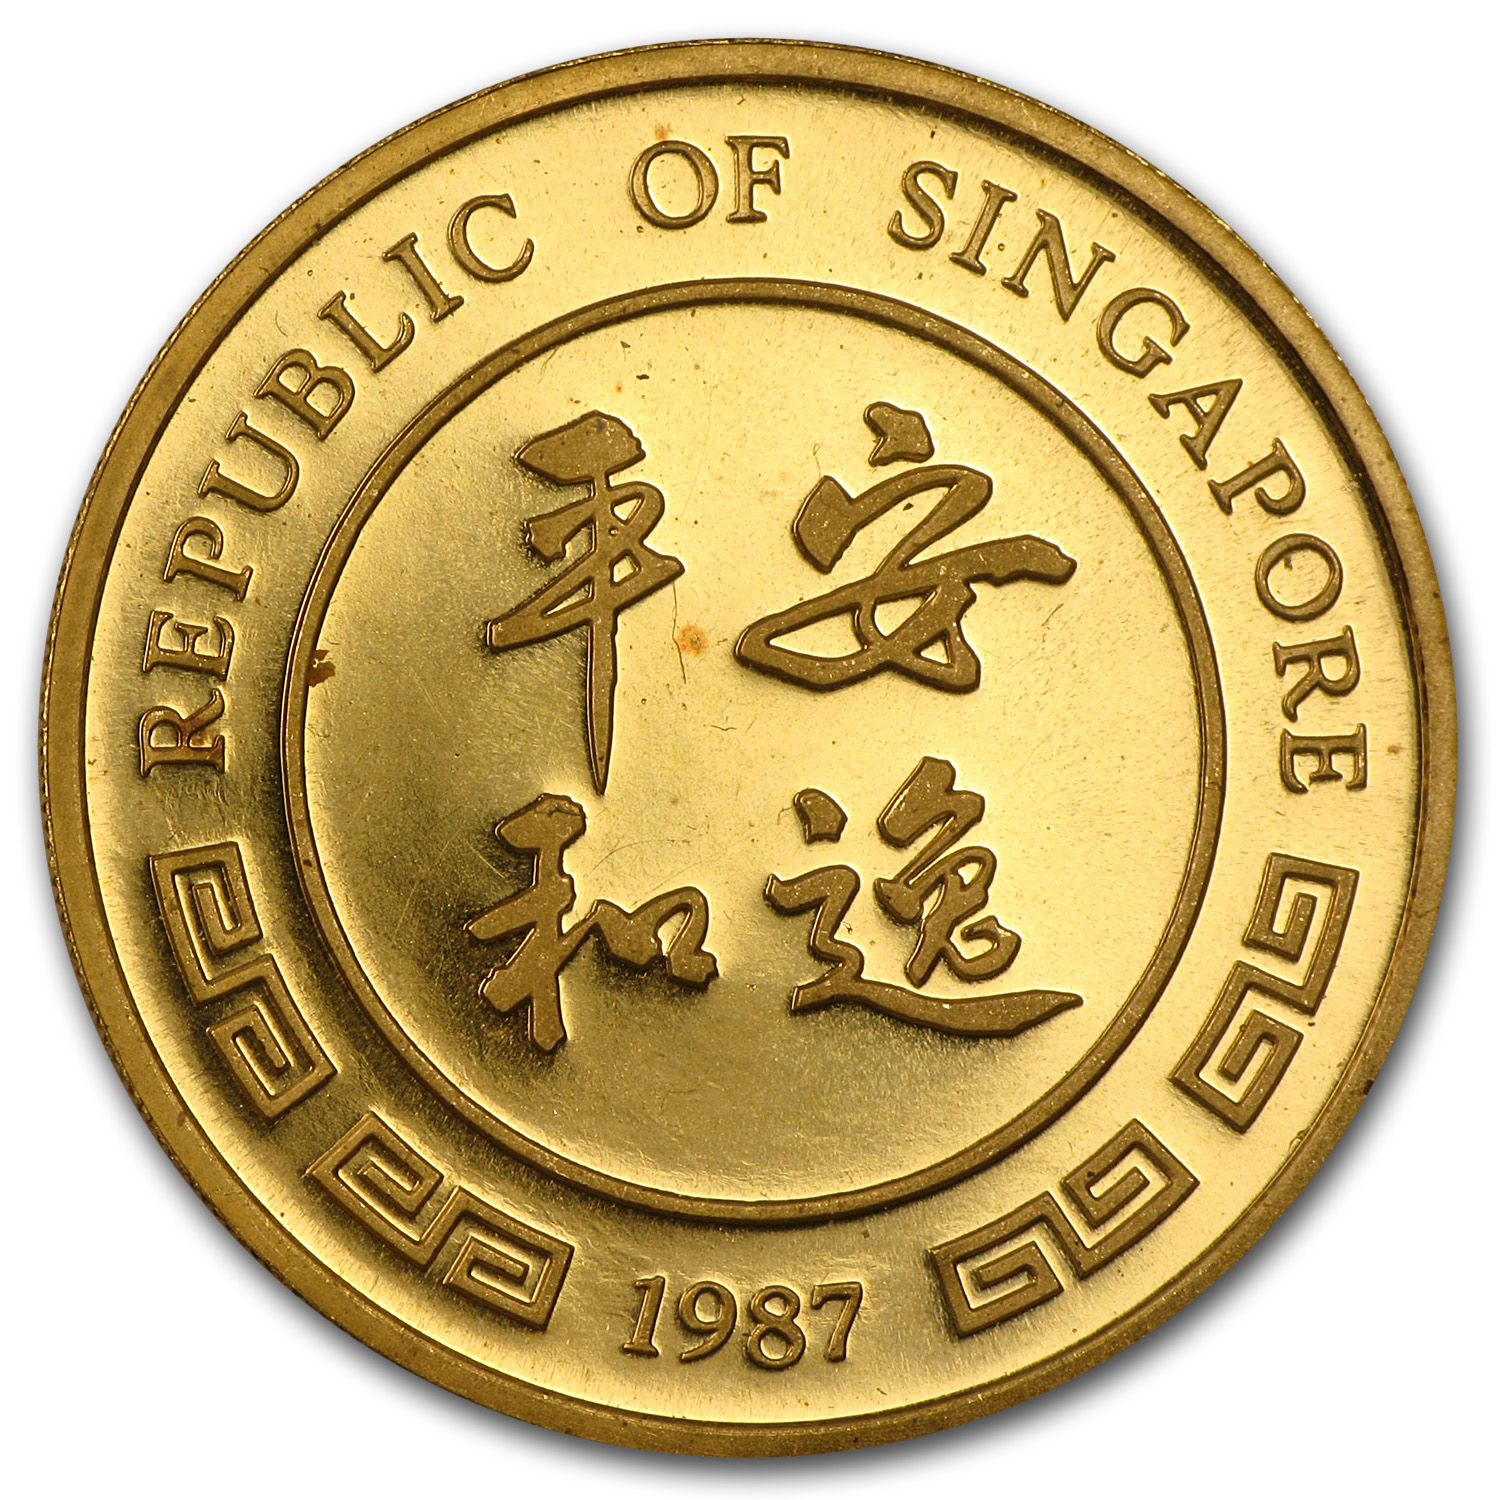 1987 Singapore 1 oz Gold 100 Singold Rabbit BU